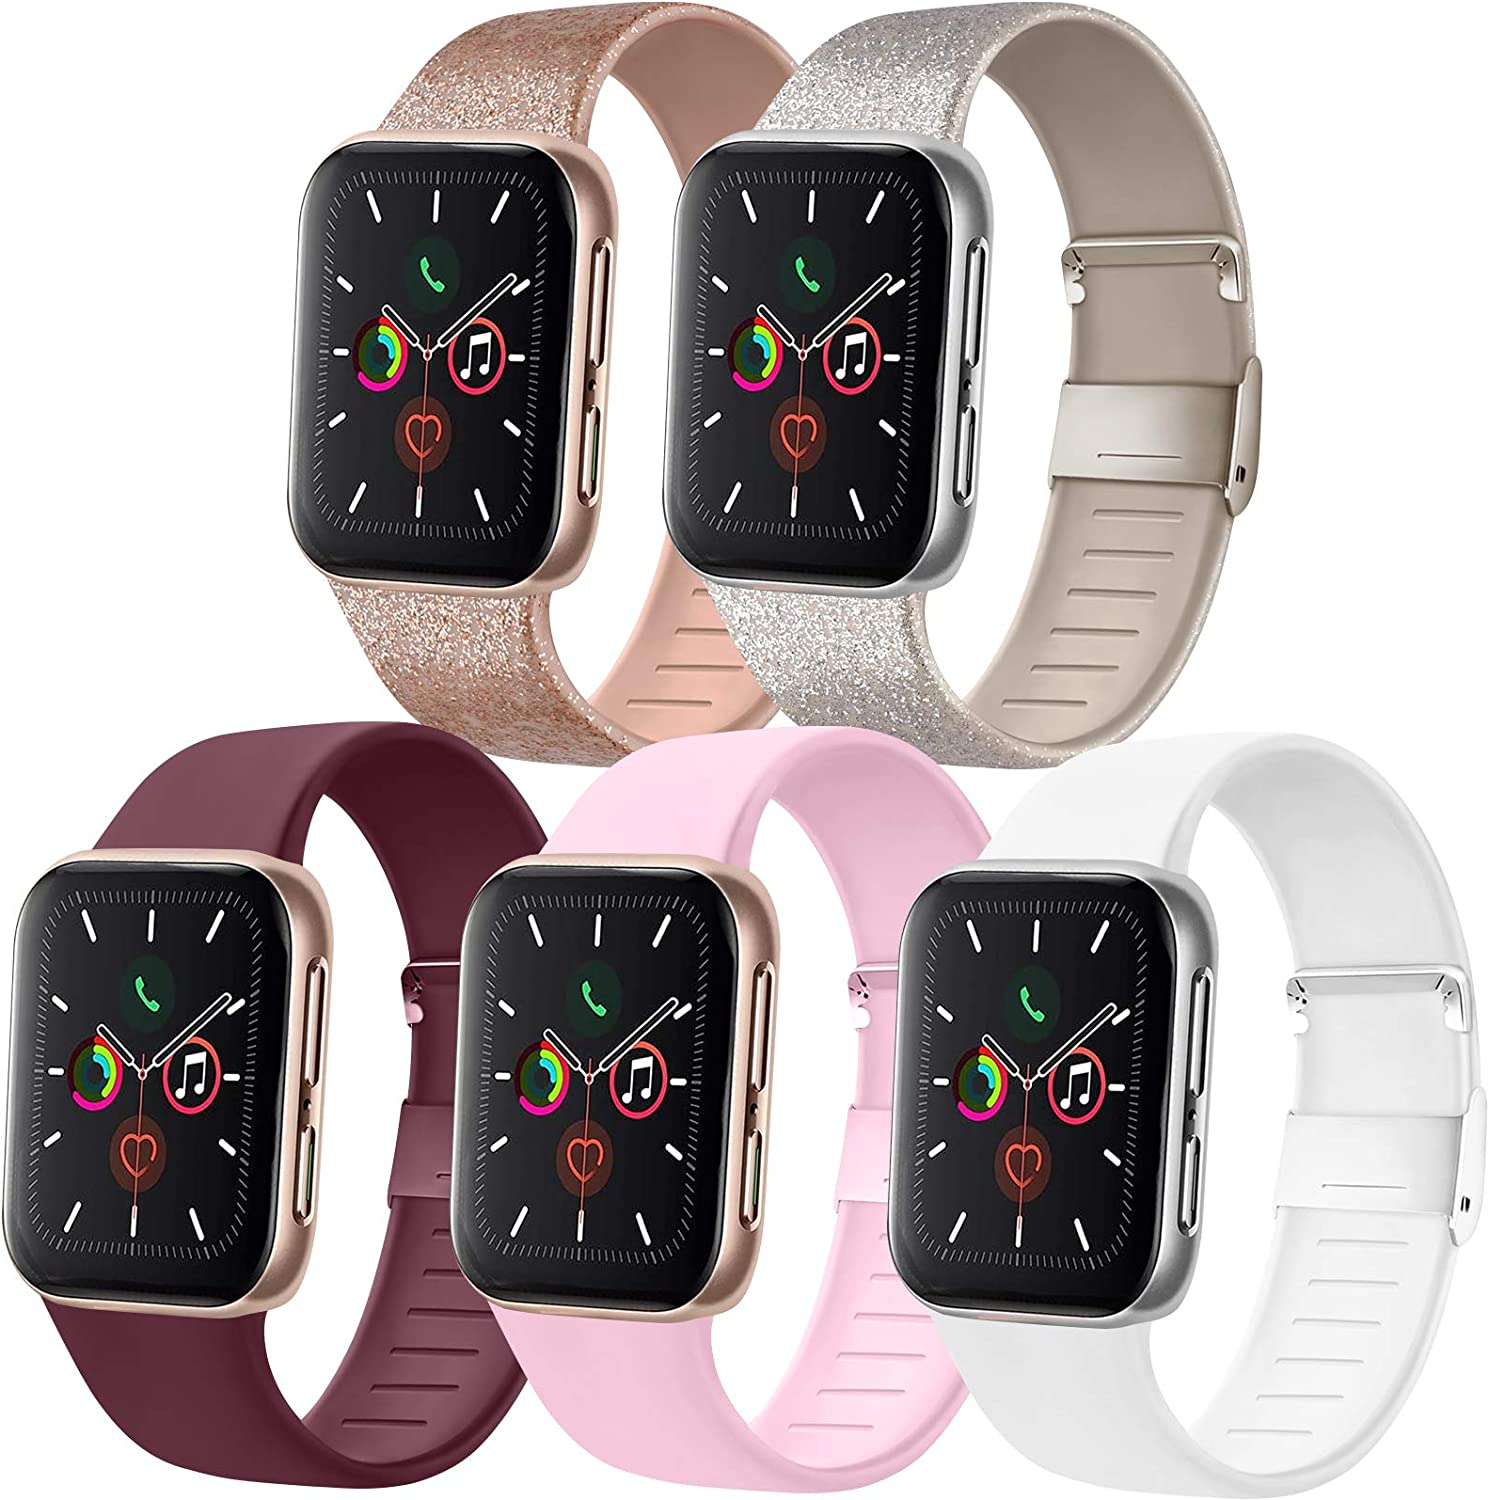 [Pack 5] Compatible with Apple Watch Bands 38mm 40mm for iWatch Series 6 5 4 3 2 1 SE, Glitter Rose Gold/Glitter Silver/Wine Red/White/Pink, 38mm/40mm S/M